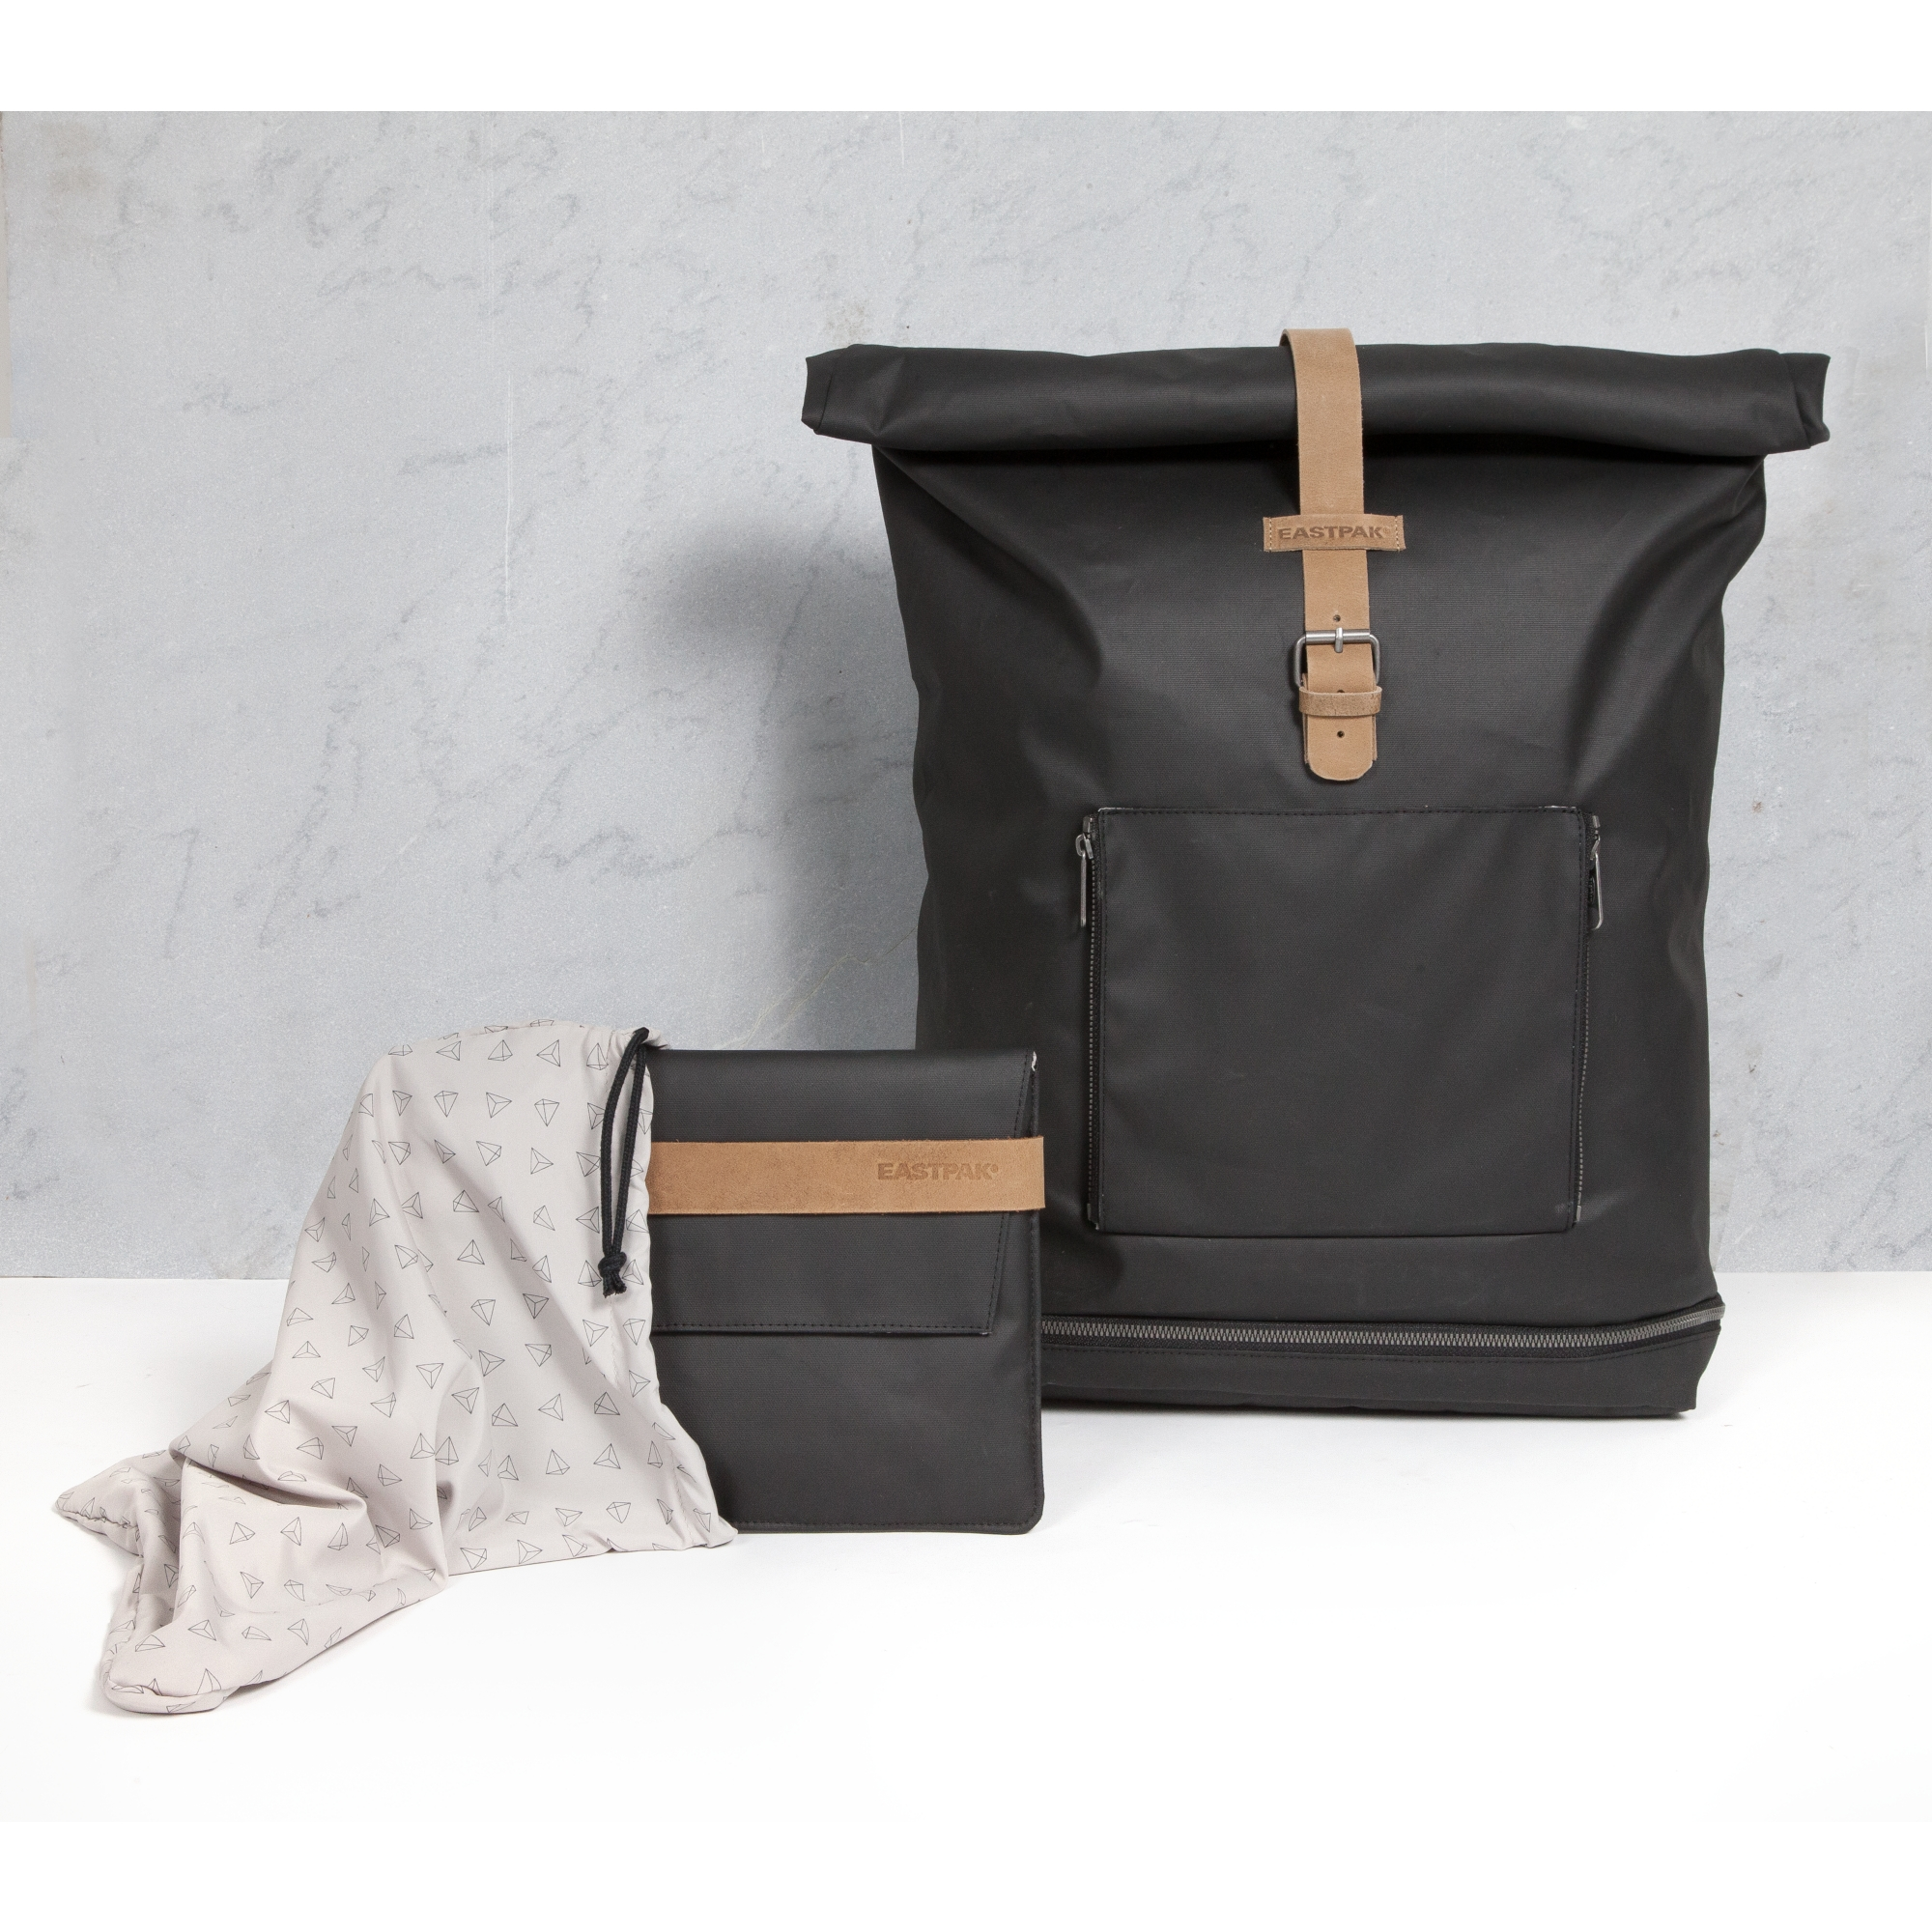 EK62A packaging AMEN STUDIO   Capsule collection per Eastpak